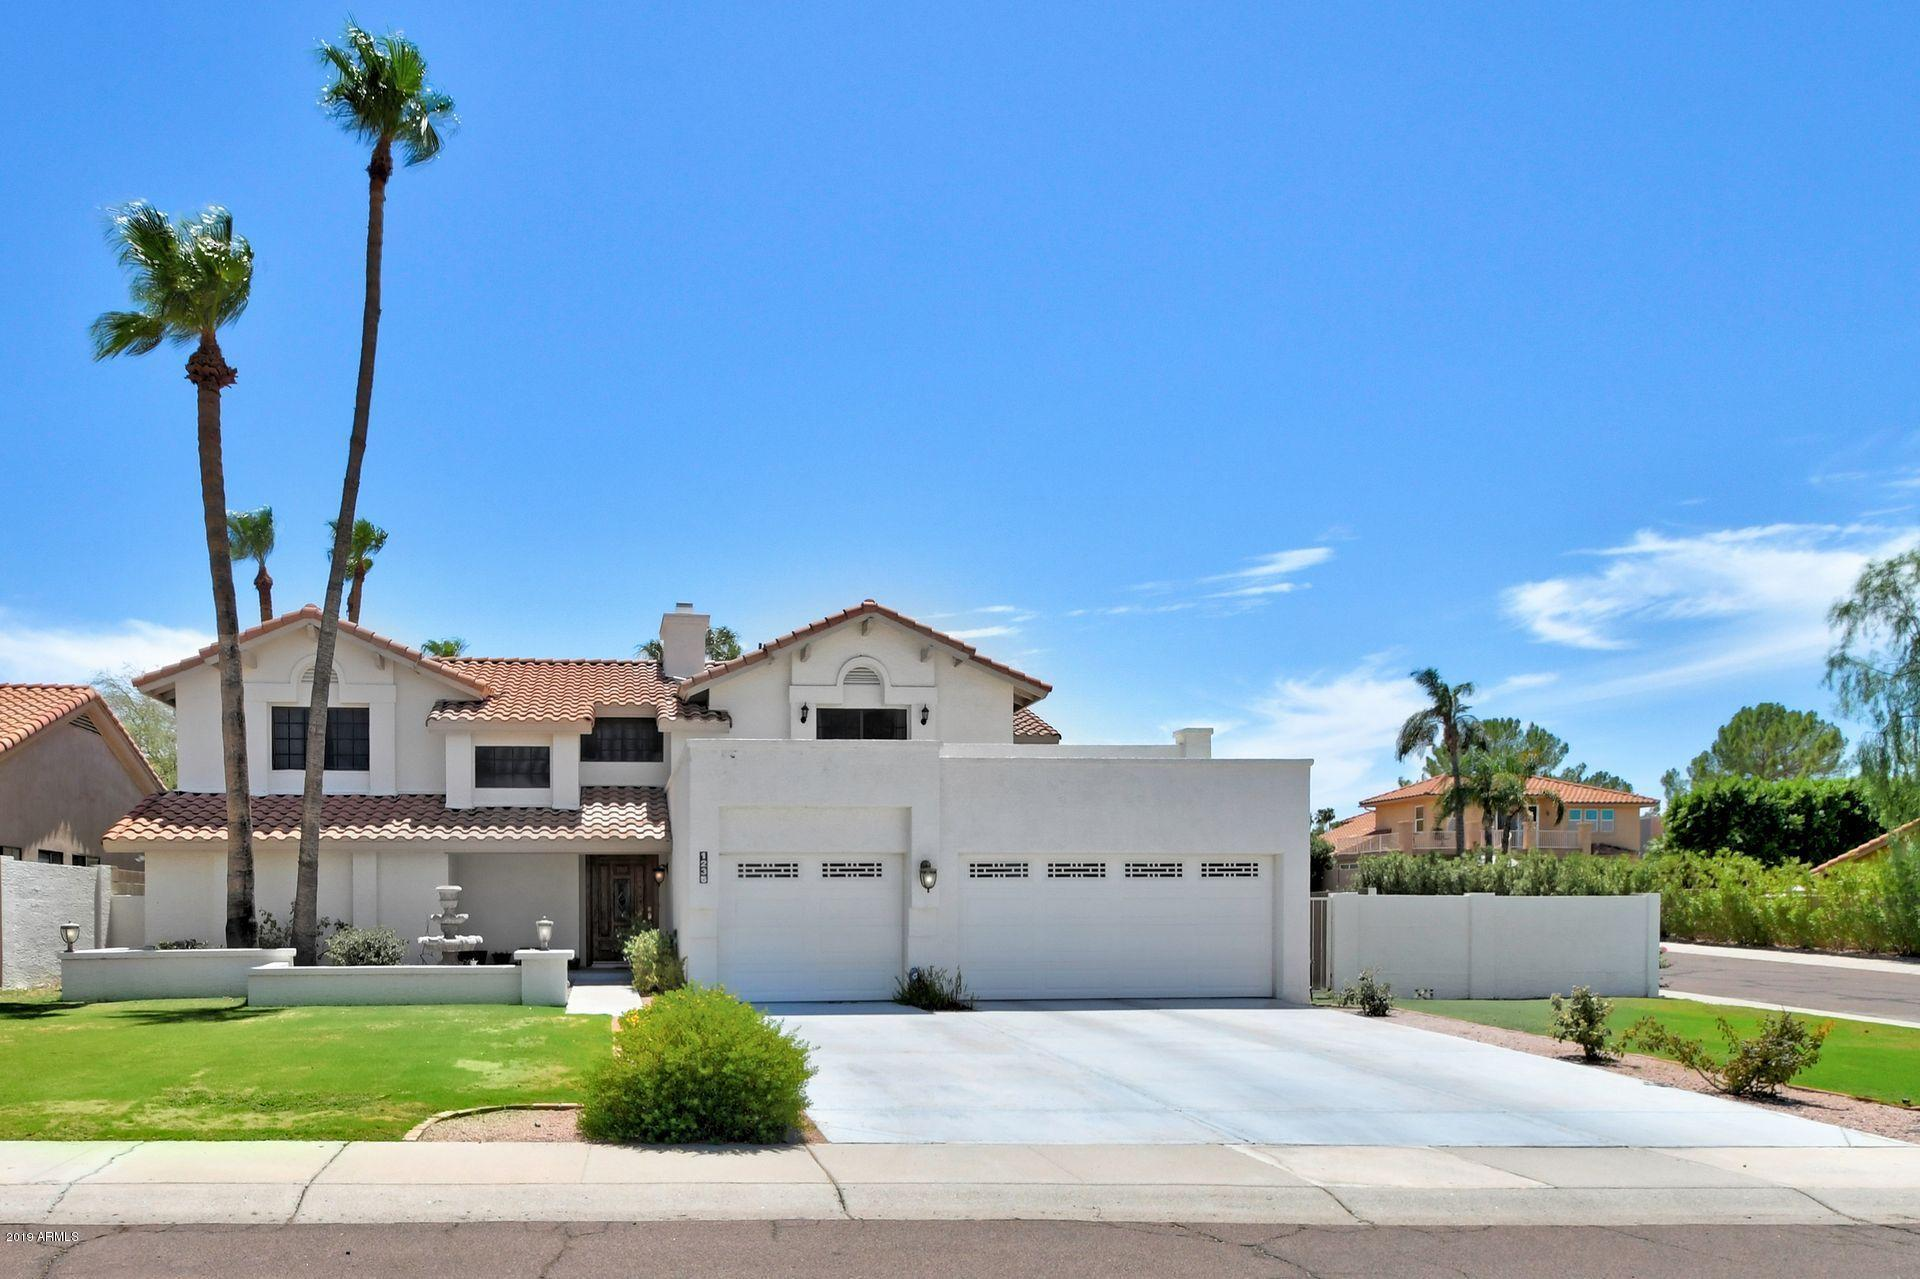 Photo of 1235 E LE MARCHE Avenue, Phoenix, AZ 85022